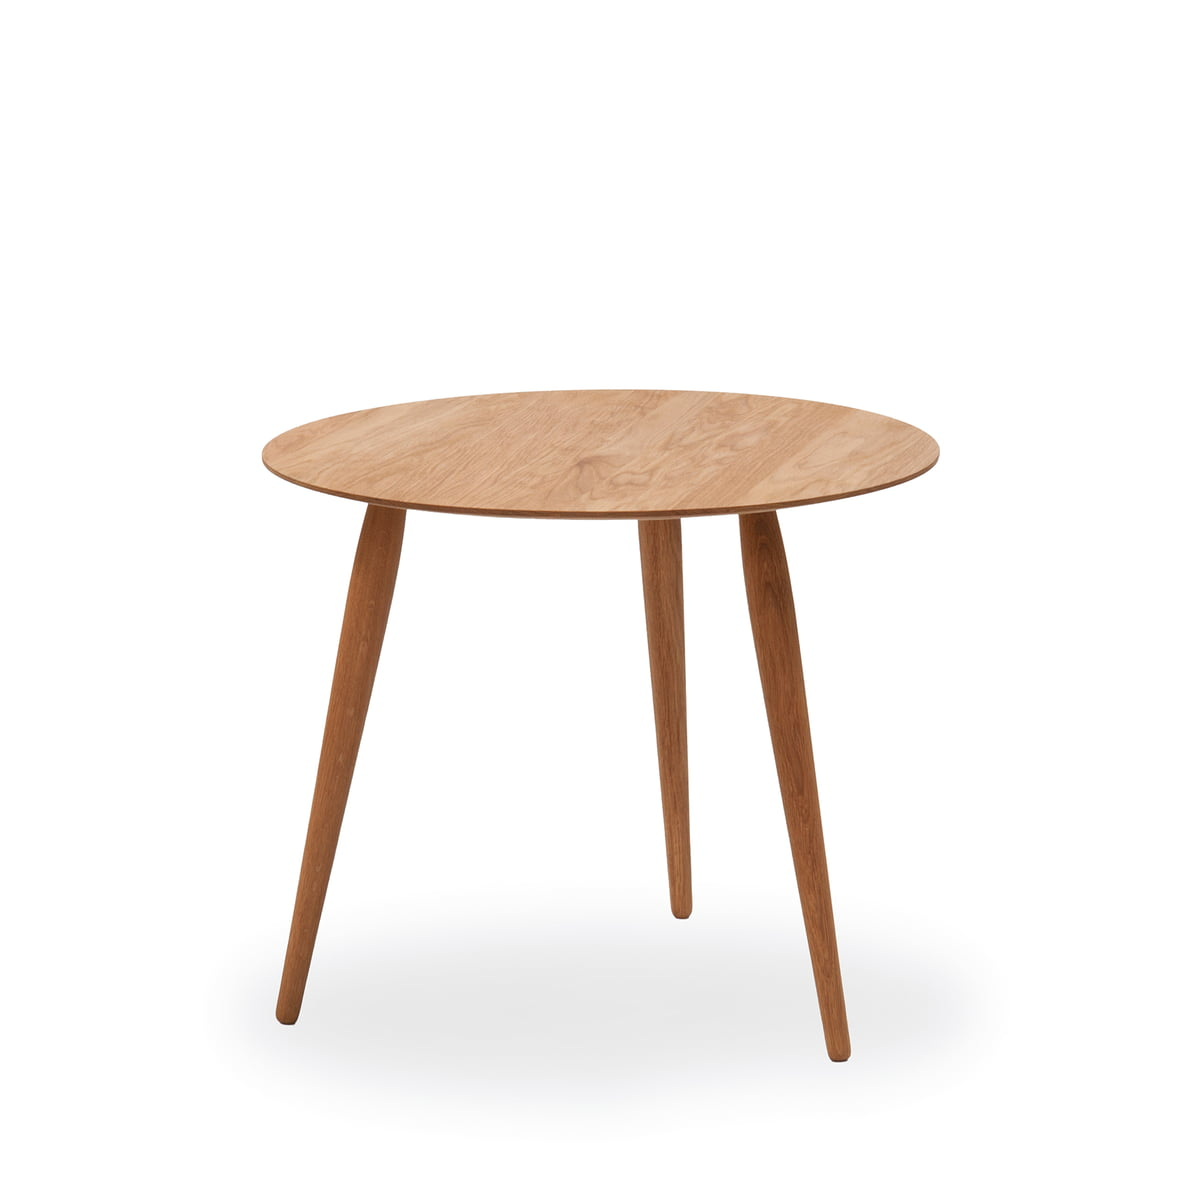 round wood side table Play Round Side Table wood by bruunmunch round wood side table